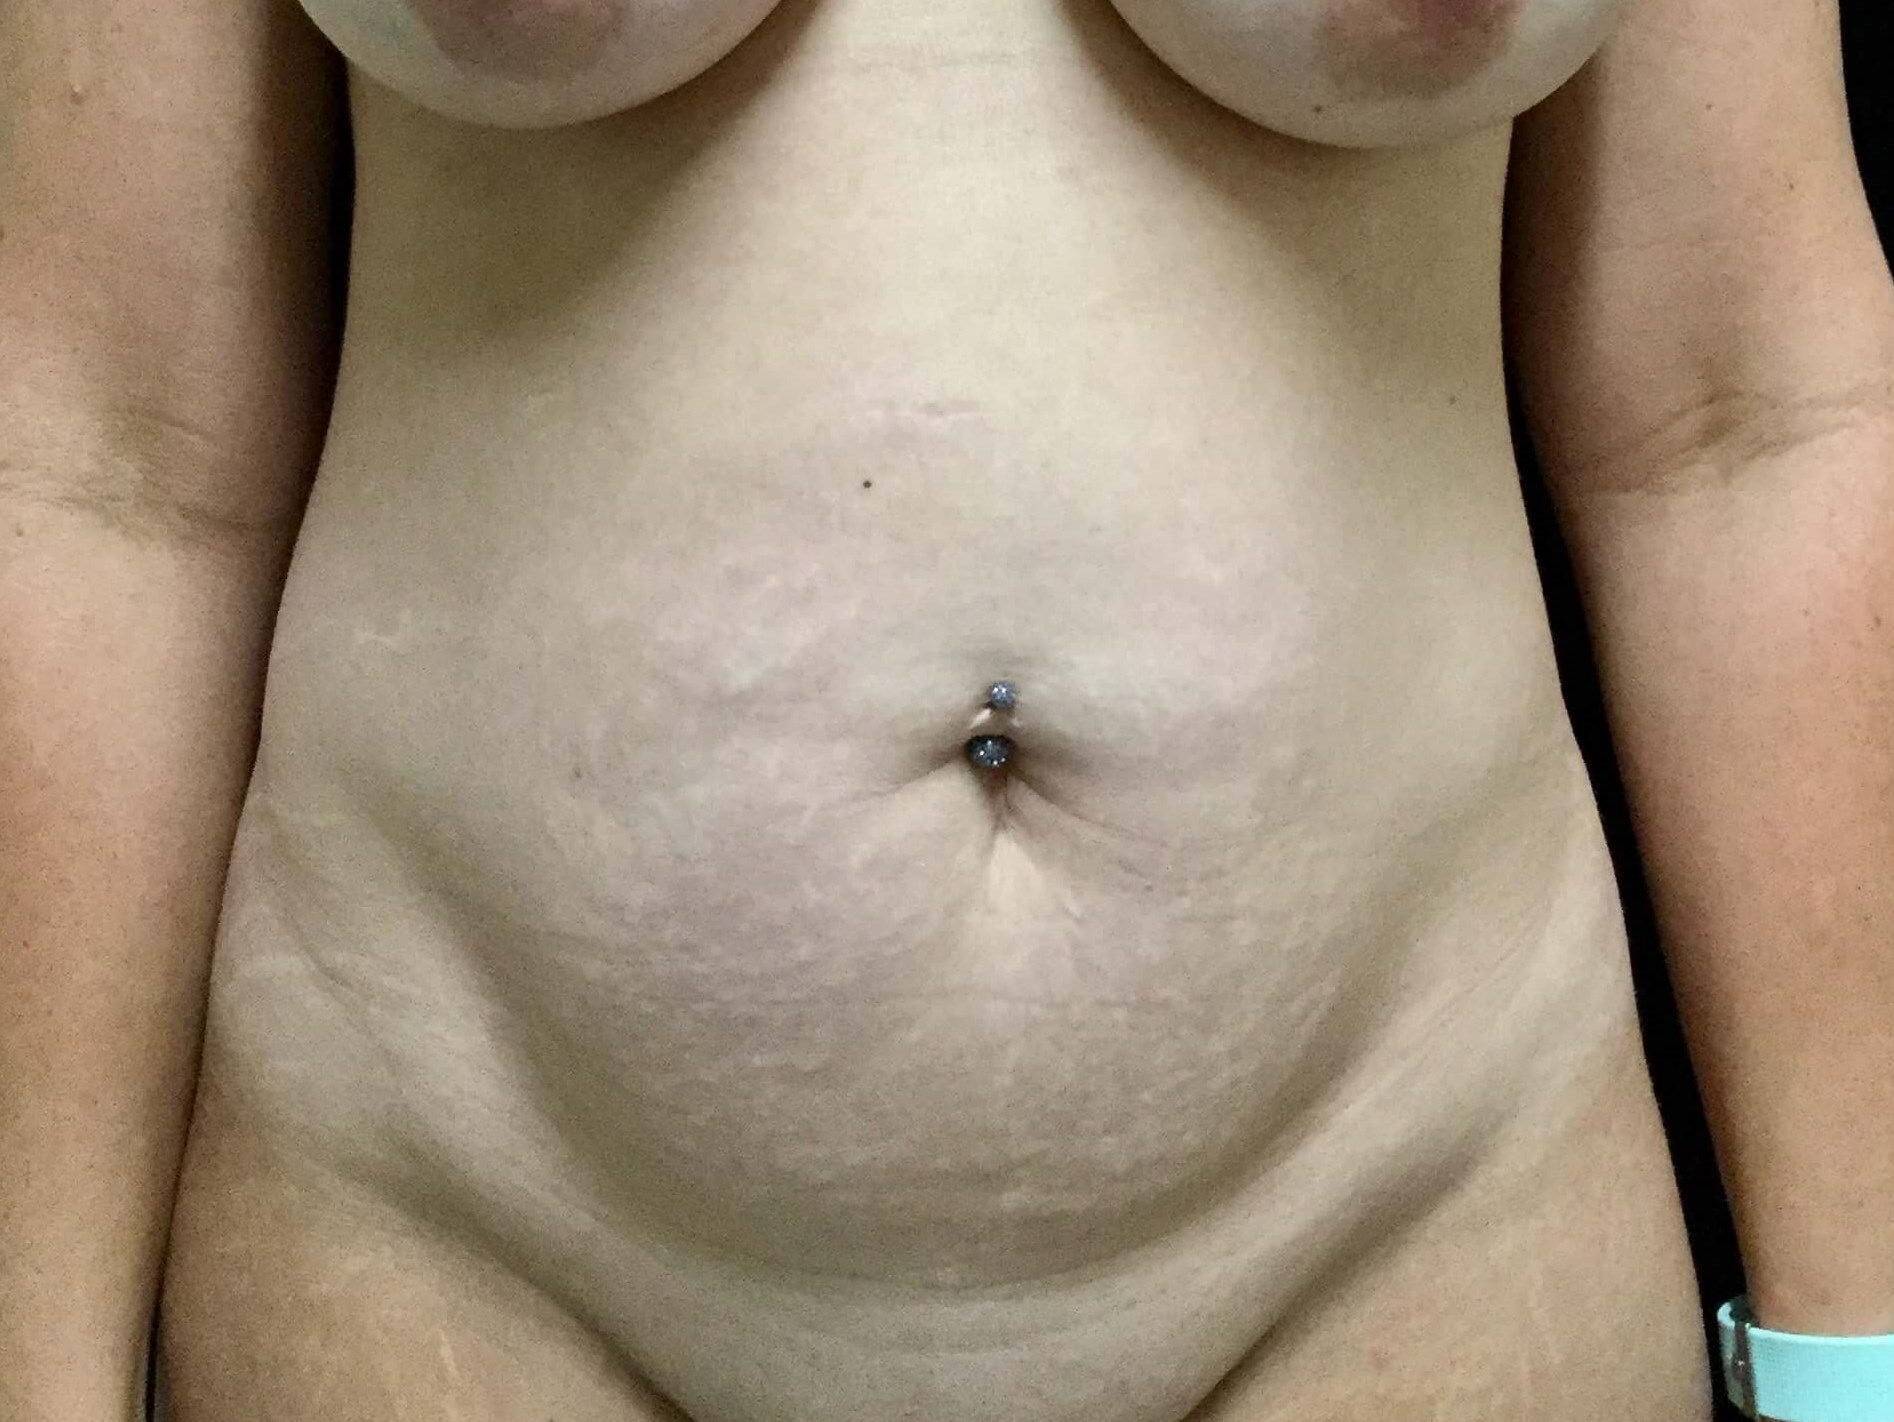 DALLAS, TEXAS WOMAN HAS TUMMY TUCK AND HI-DEF LIPO TO ABDOMEN